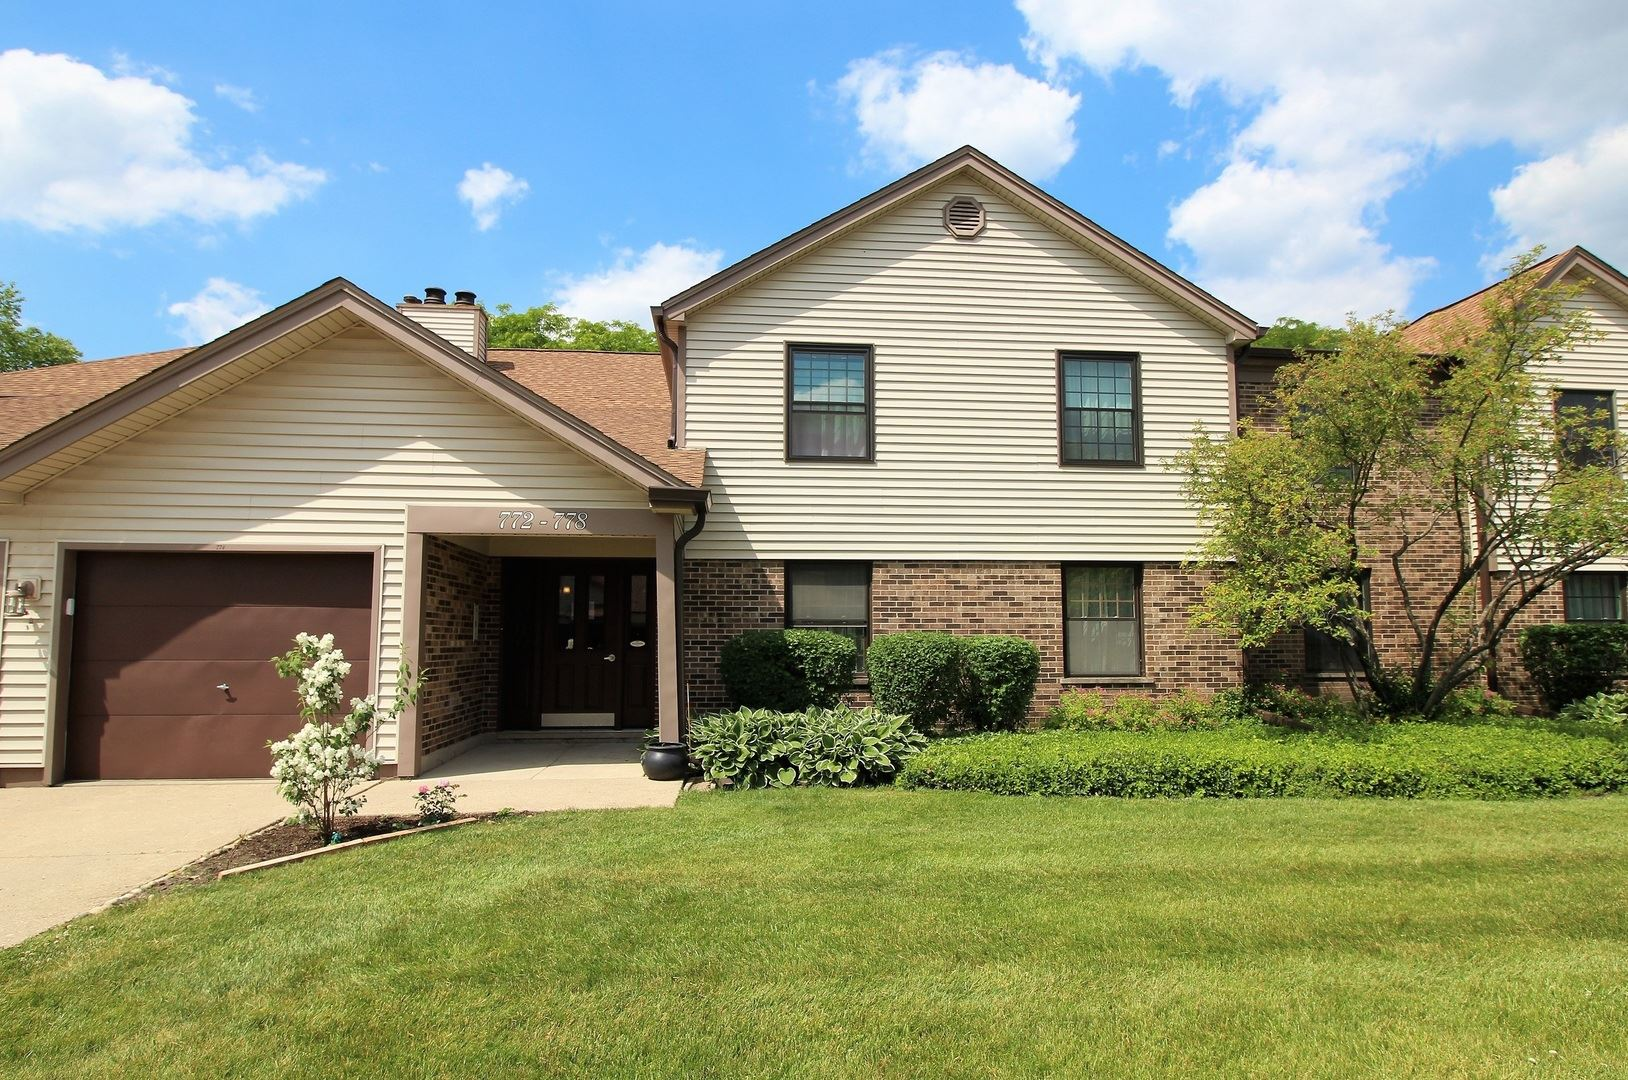 776 WHITE PINE Road #6D1, Buffalo Grove, IL 60089 - #: 10750947